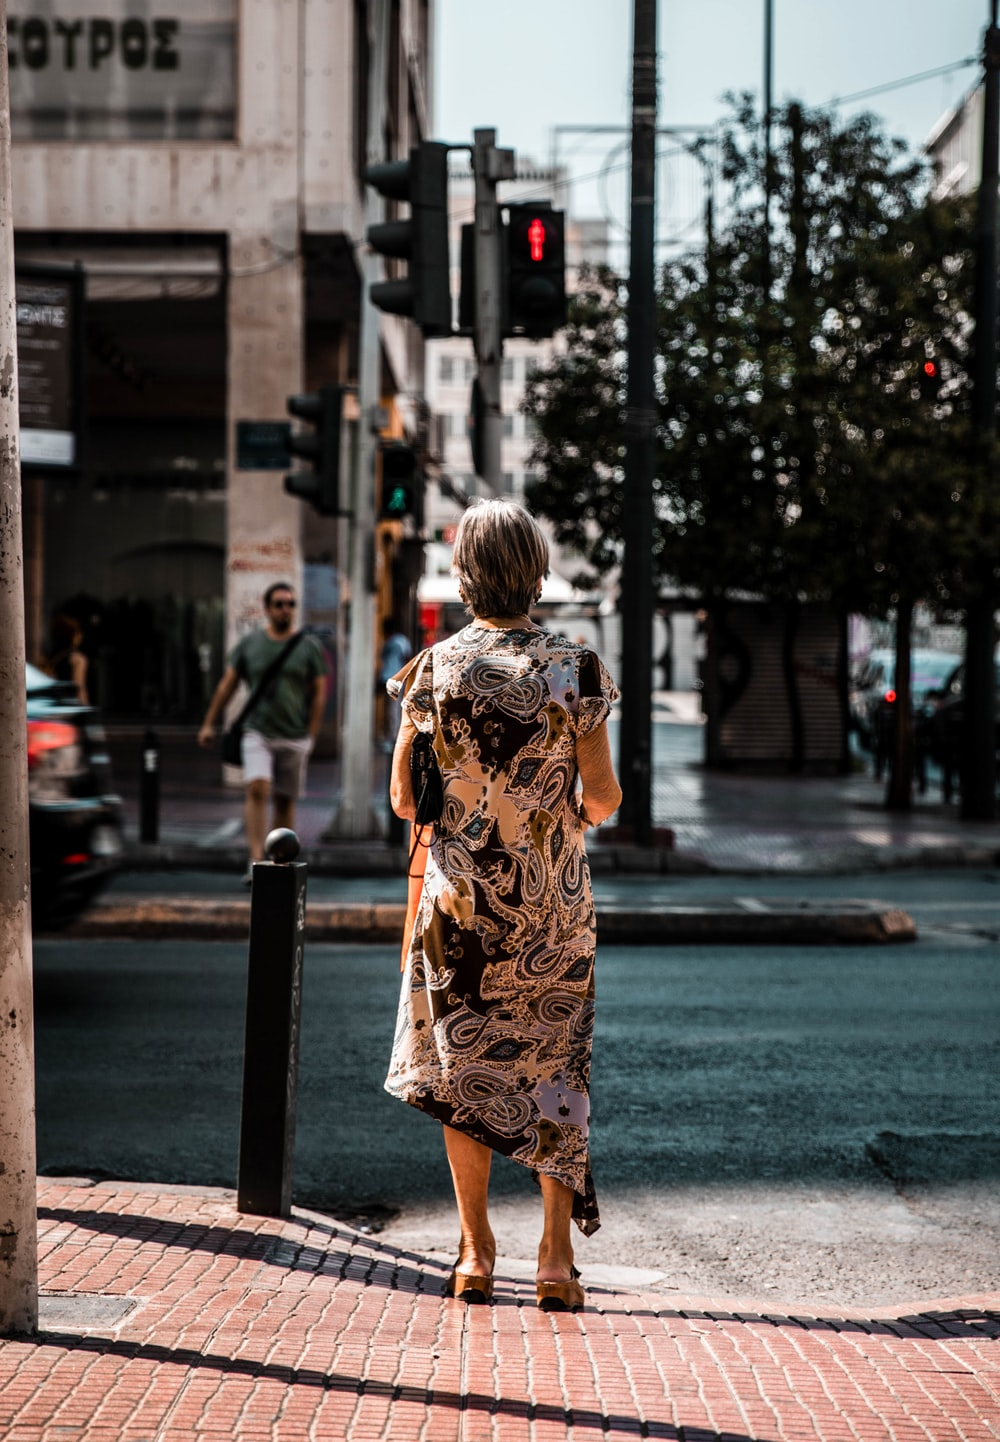 woman in yellow and black floral dress standing on sidewalk during daytime